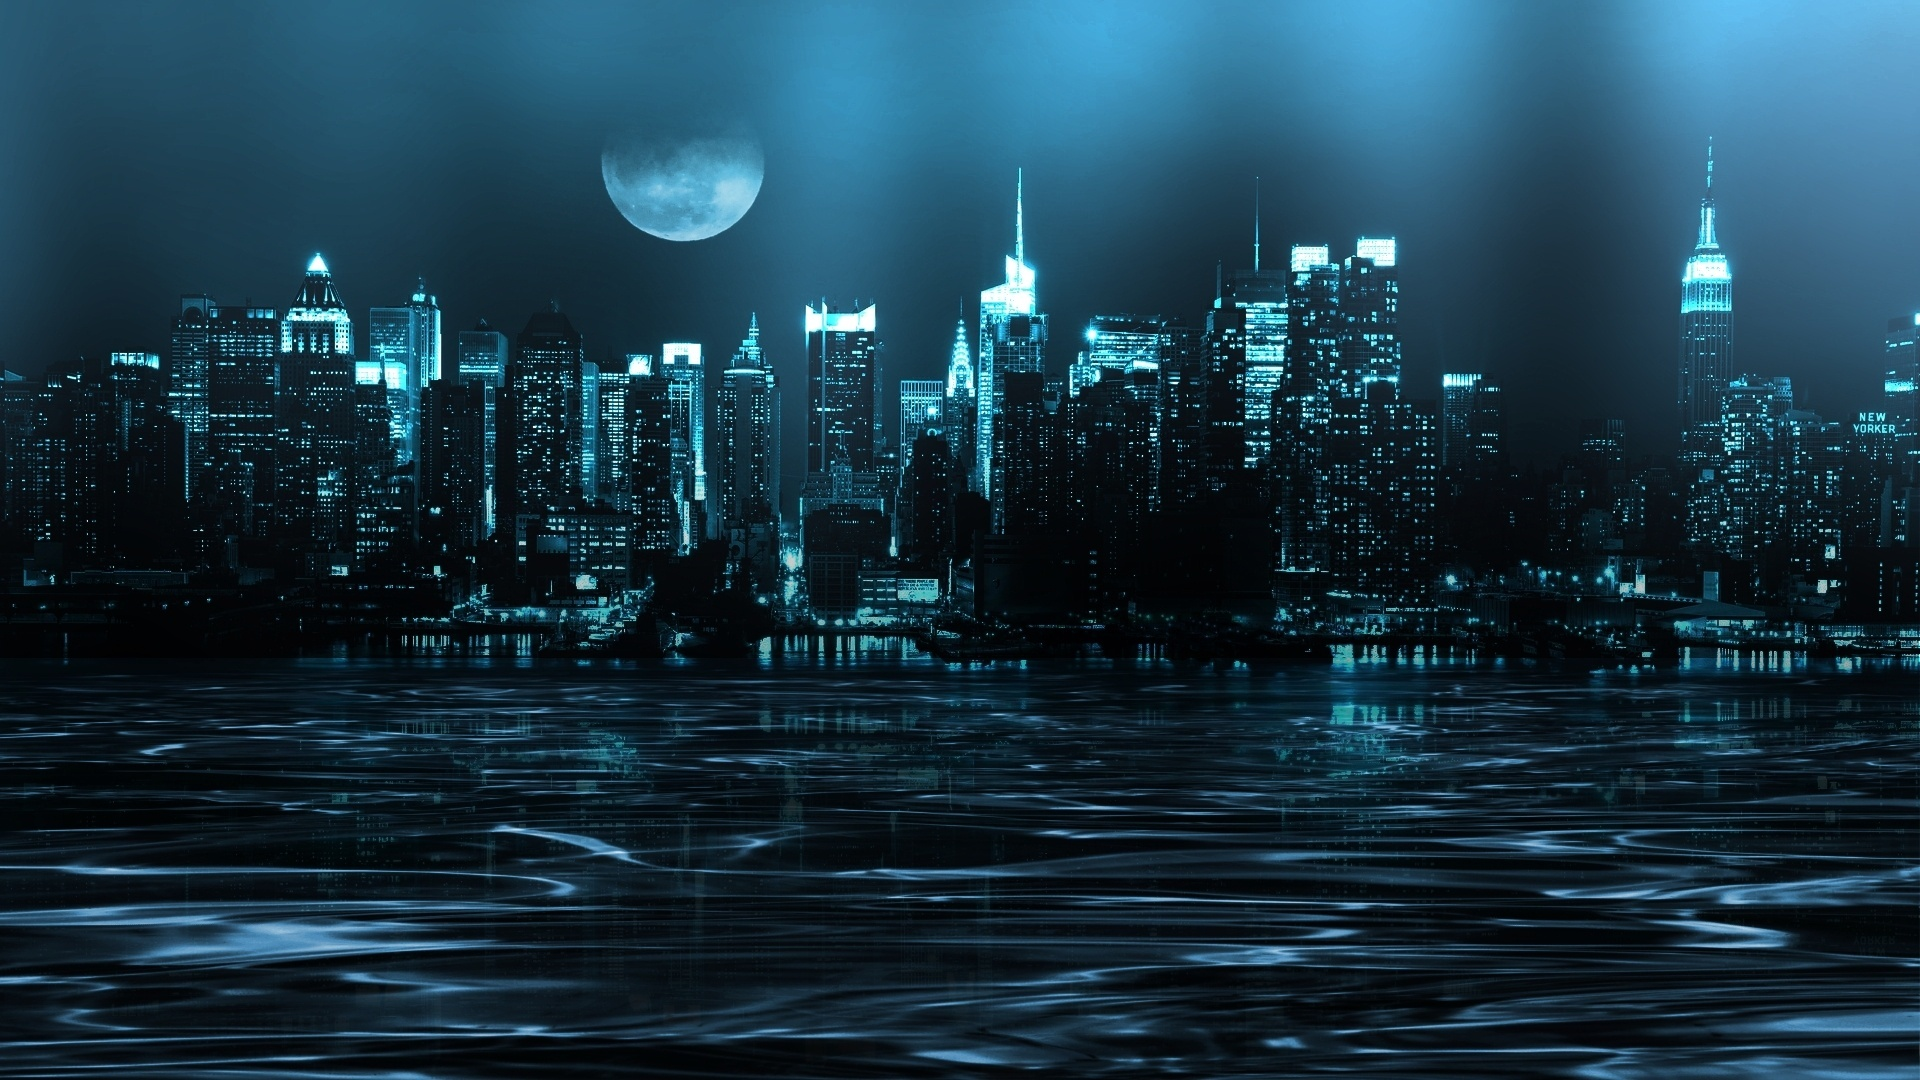 city_night_moon_hd-wallpaper-351140